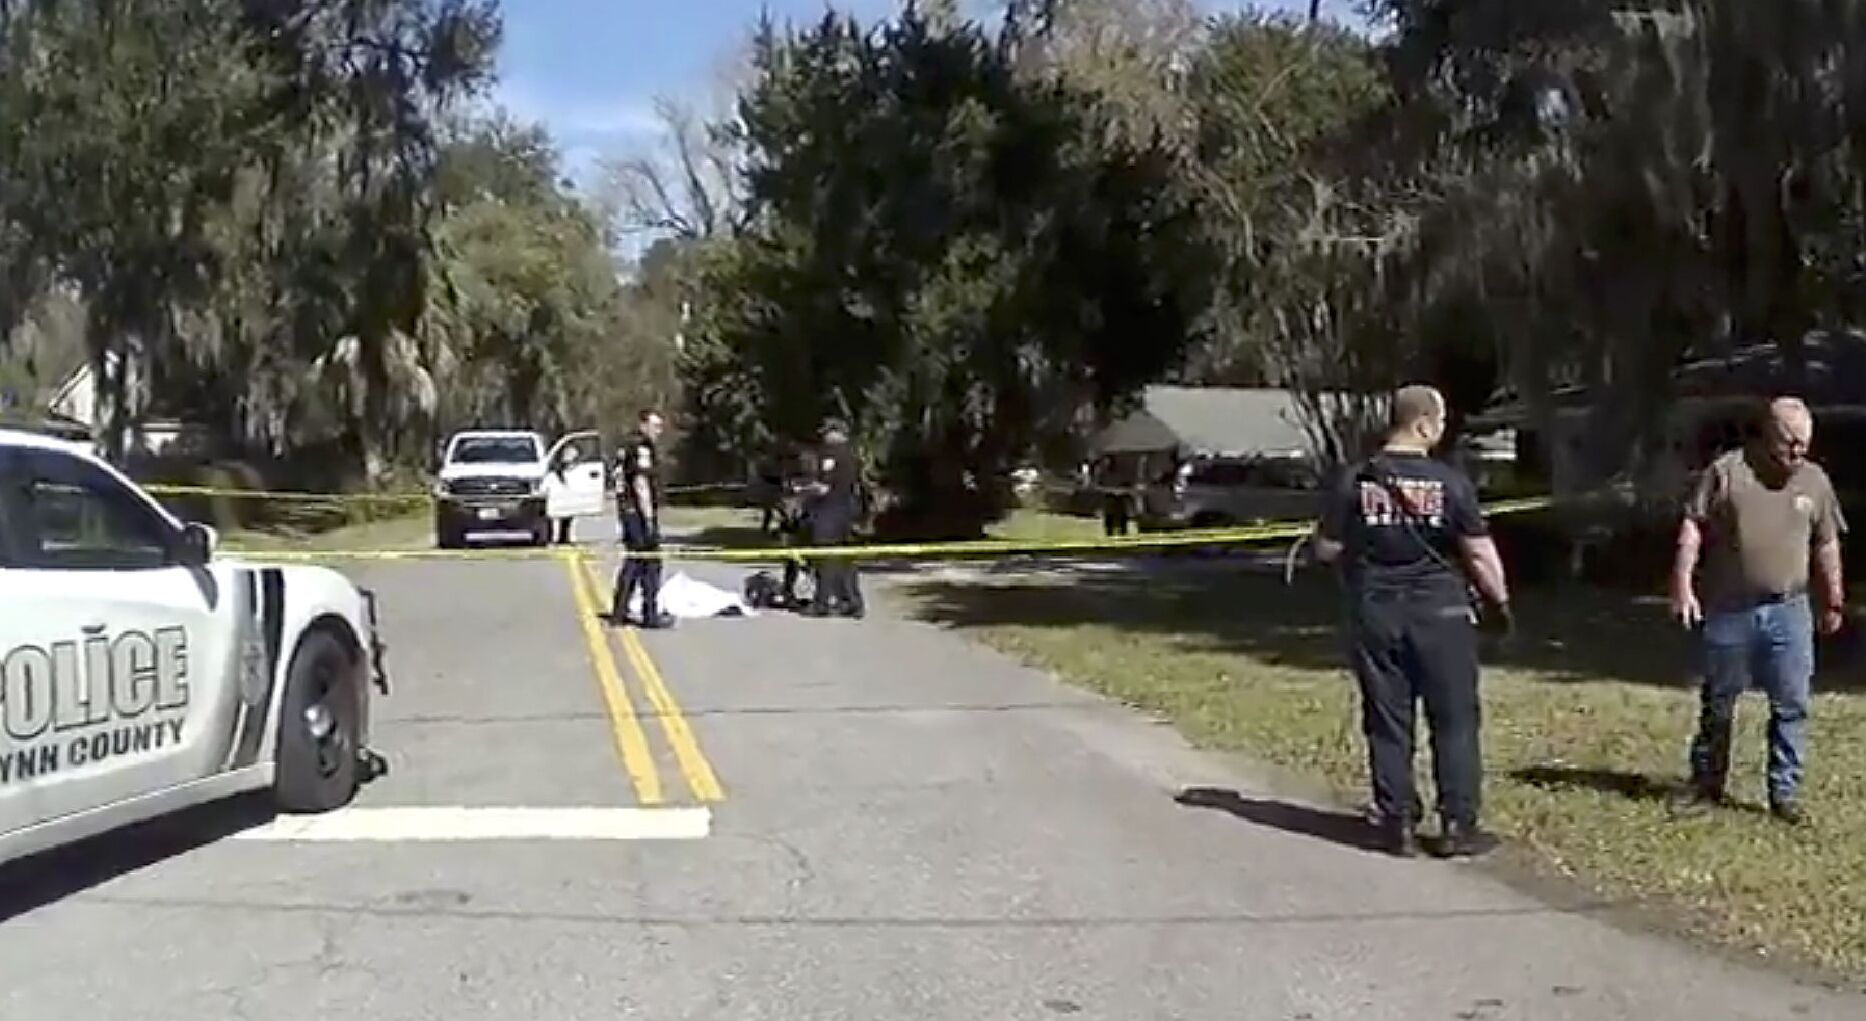 In this Feb. 23, 2020 image taken from Glynn, Ga., County Police body camera video, authorities, rear, stand over the covered body of Ahmaud Arbery, a 25-year-old Black man, who was shot and killed while while running in a neighborhood outside the port city of Brunswick, Ga.